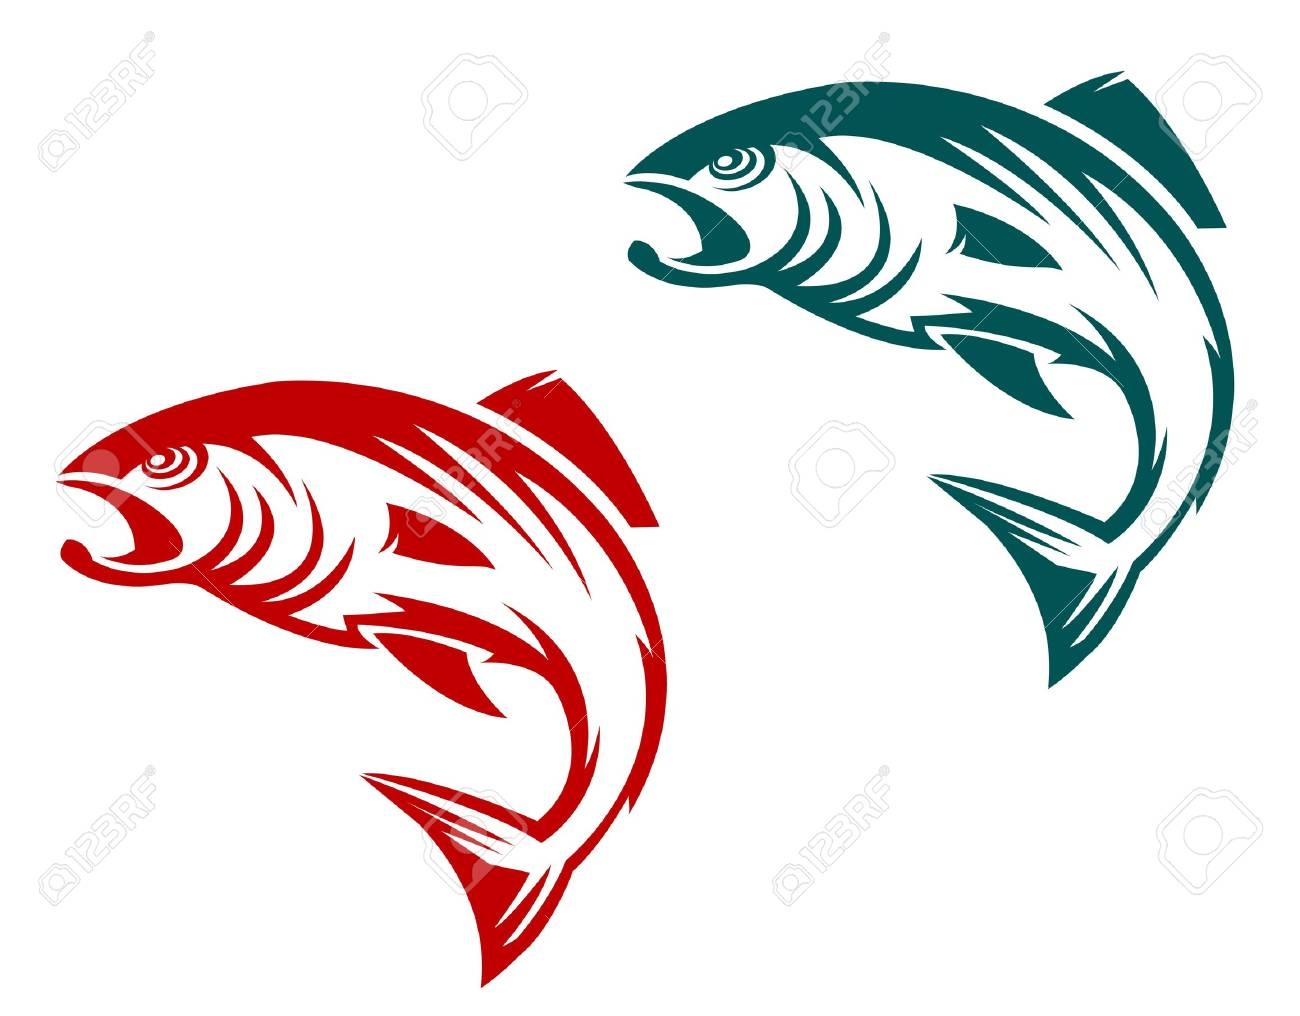 salmon fish in two variations for fishing sports mascot royalty